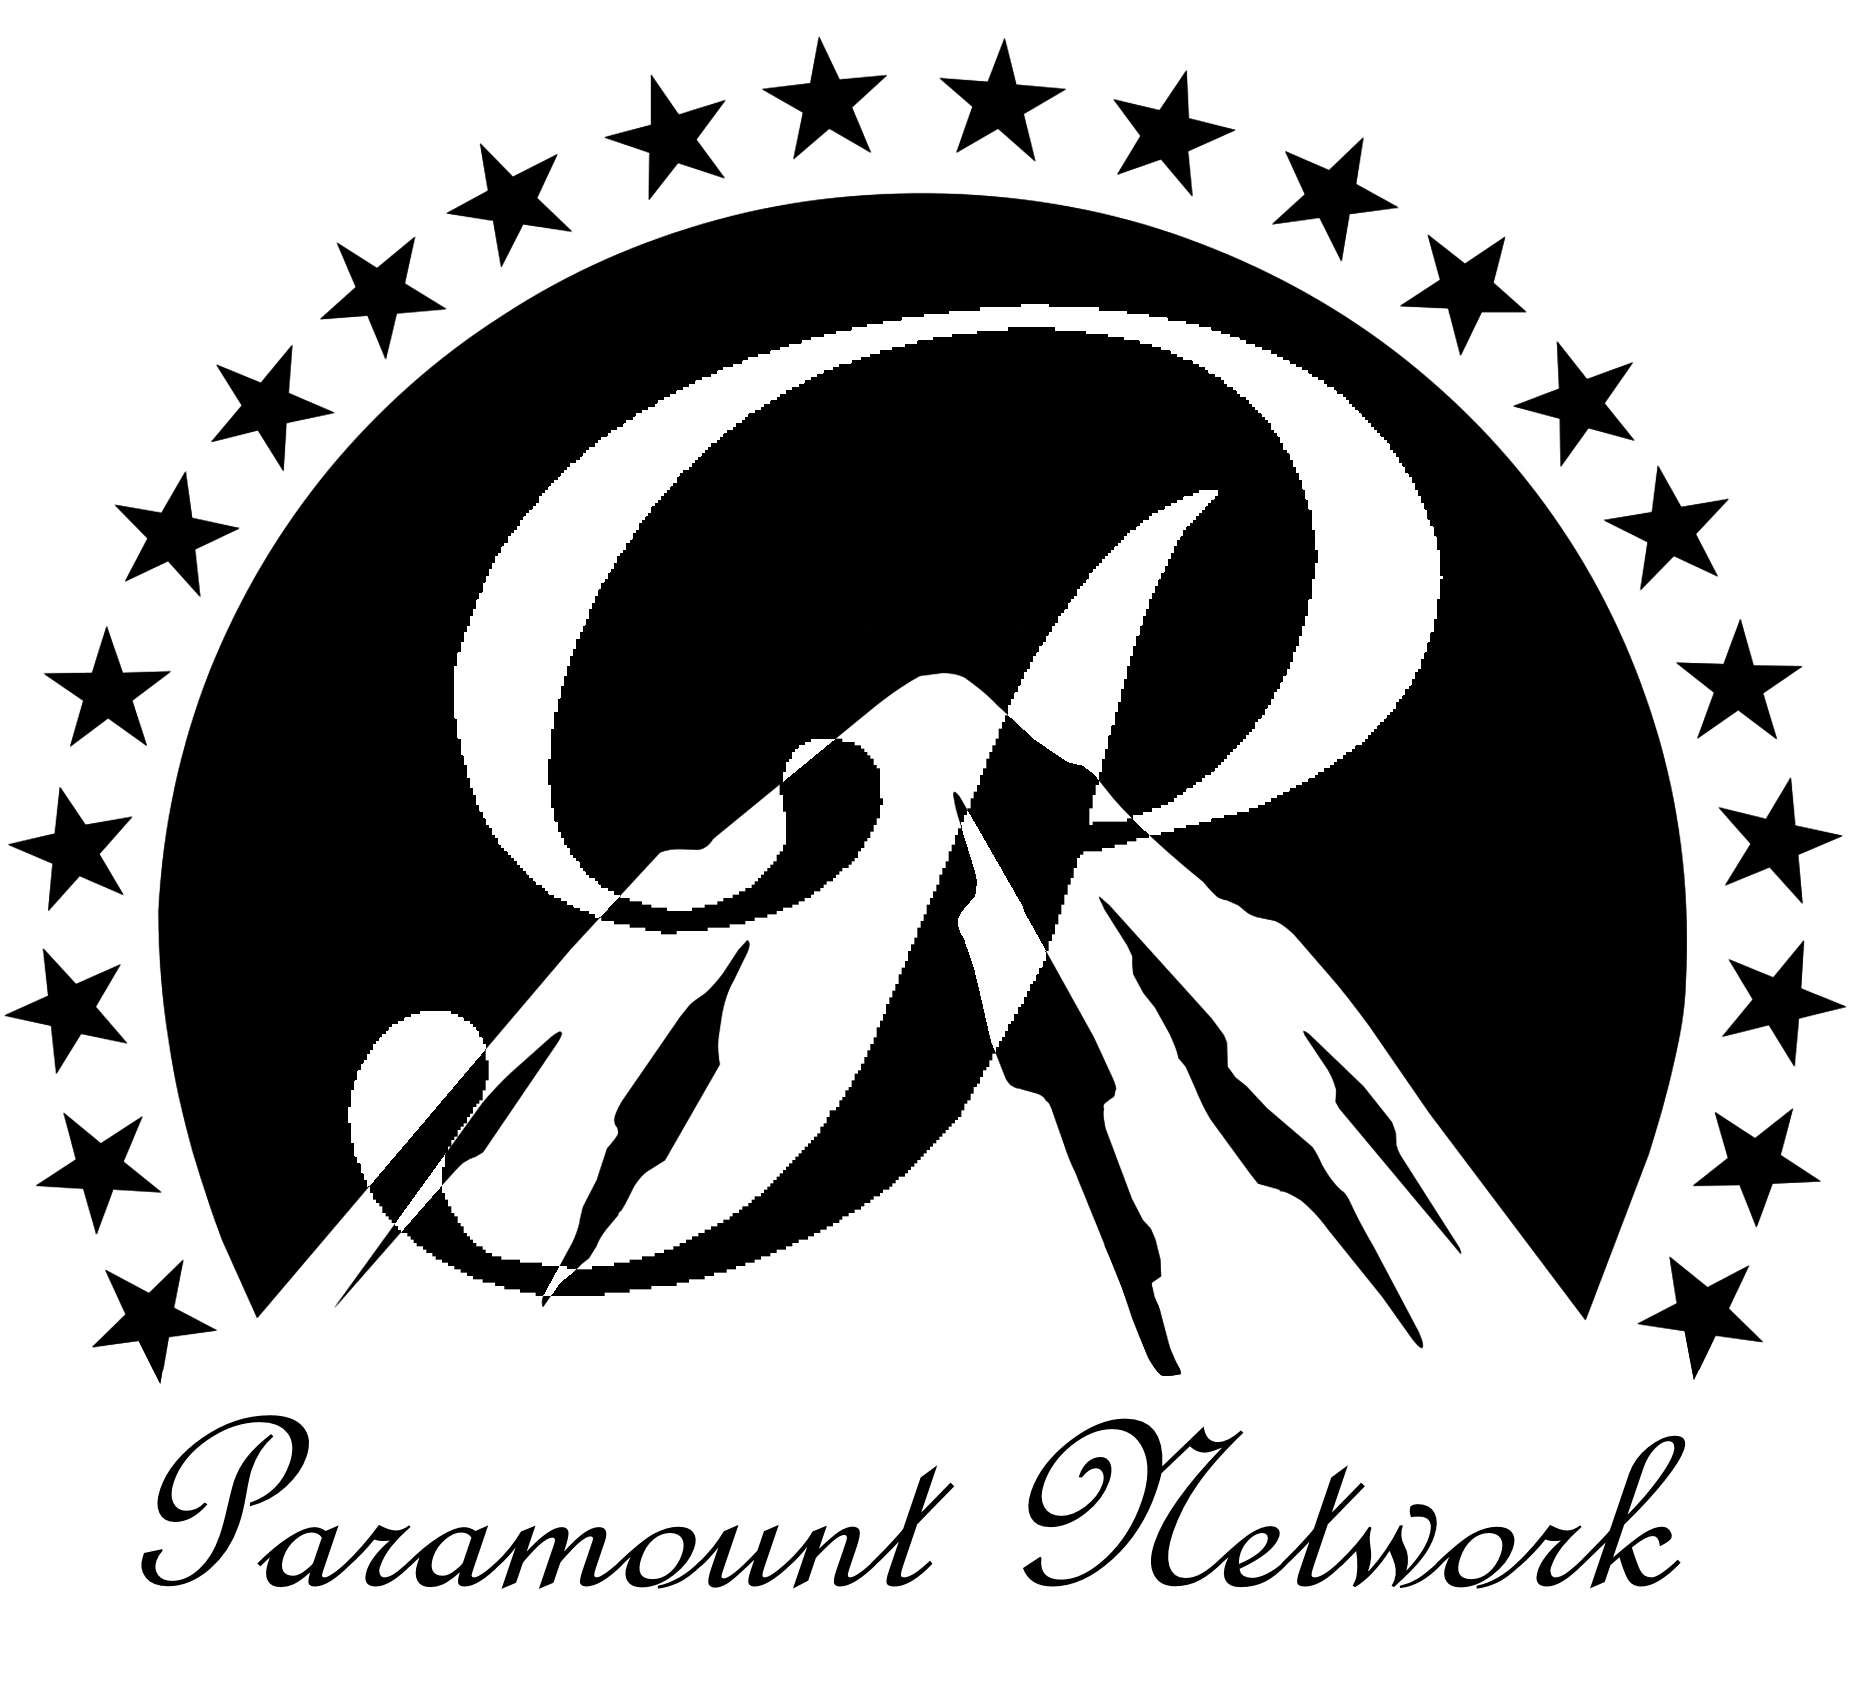 Paramount network logo clipart banner library stock Paramount Network Logo - LogoDix banner library stock